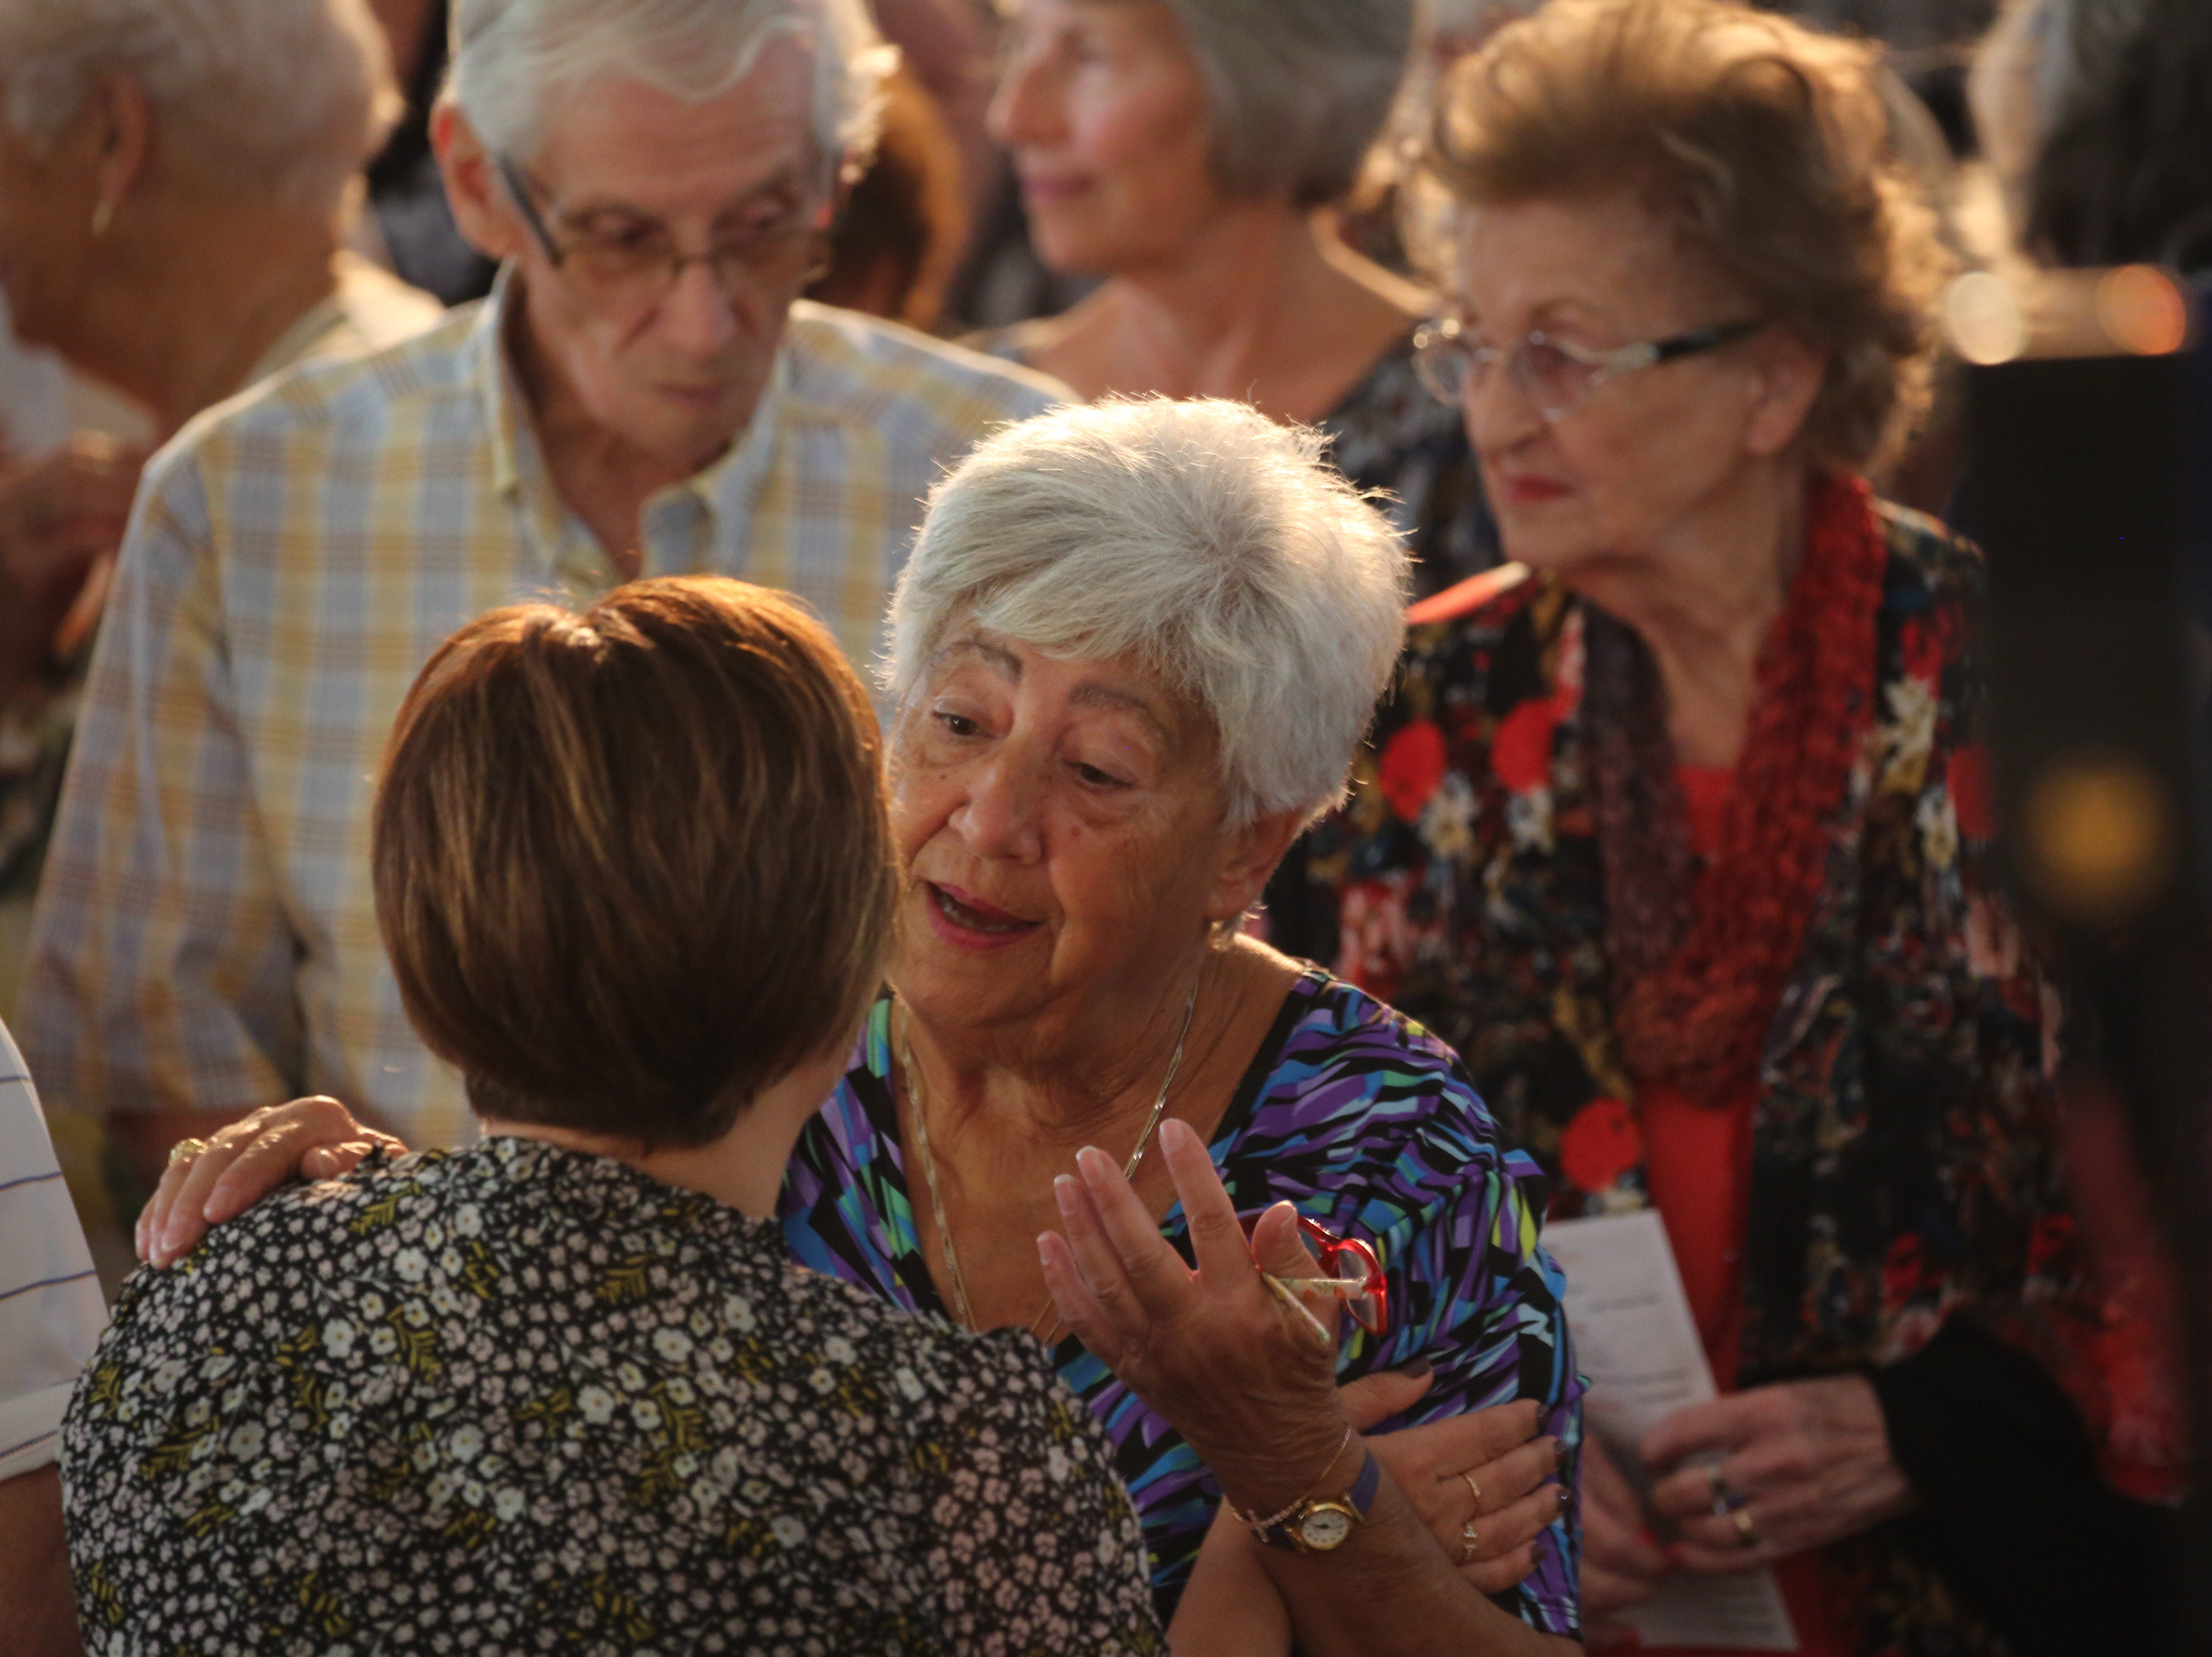 Roseanne Constantinople greets Tracey Galloway at the 30th Annual Mrs. Edison's Hymn Sing on Tuesday at First Presbyterian Church in Fort Myers.